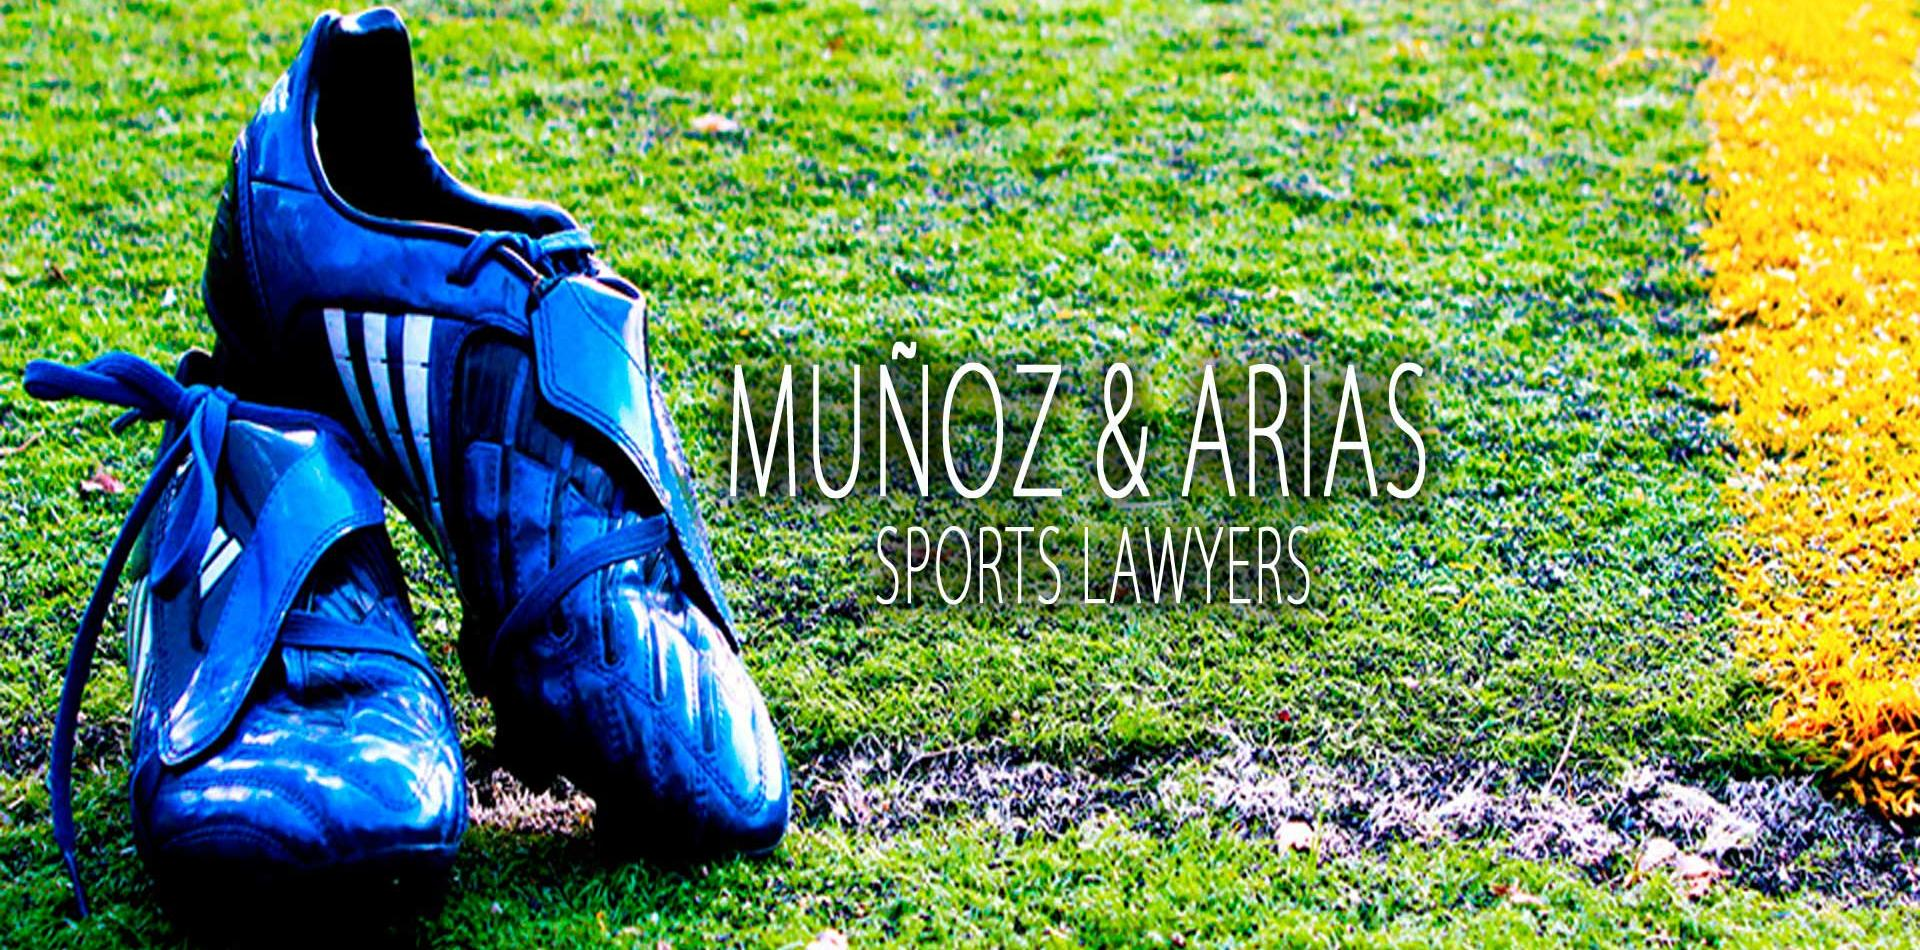 Muñoz & Arias - Sports Lawyers - NeutralSEO